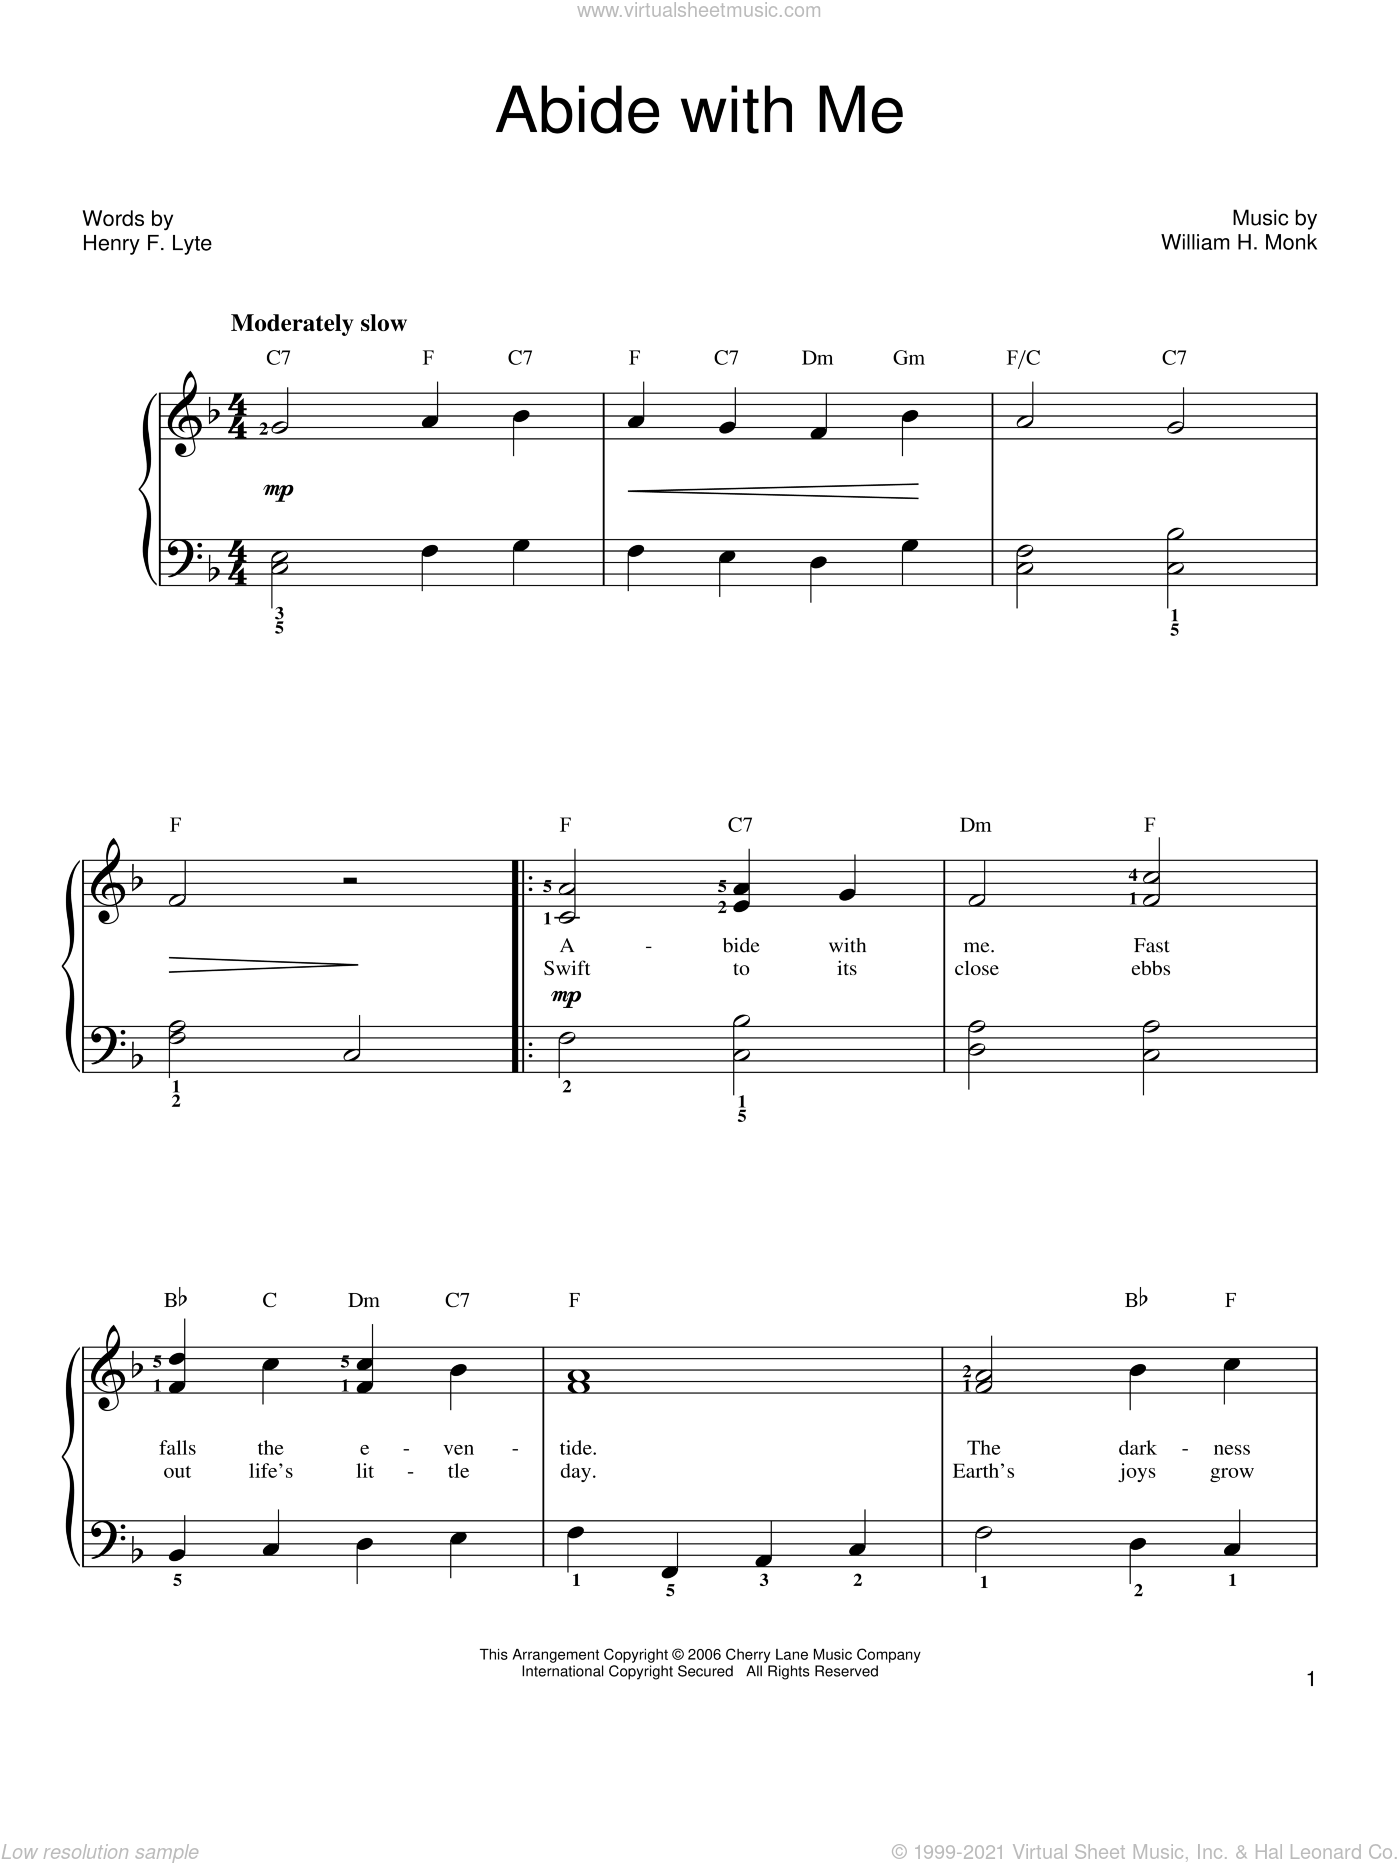 Abide With Me sheet music for piano solo by Henry F. Lyte and William Henry Monk, easy skill level